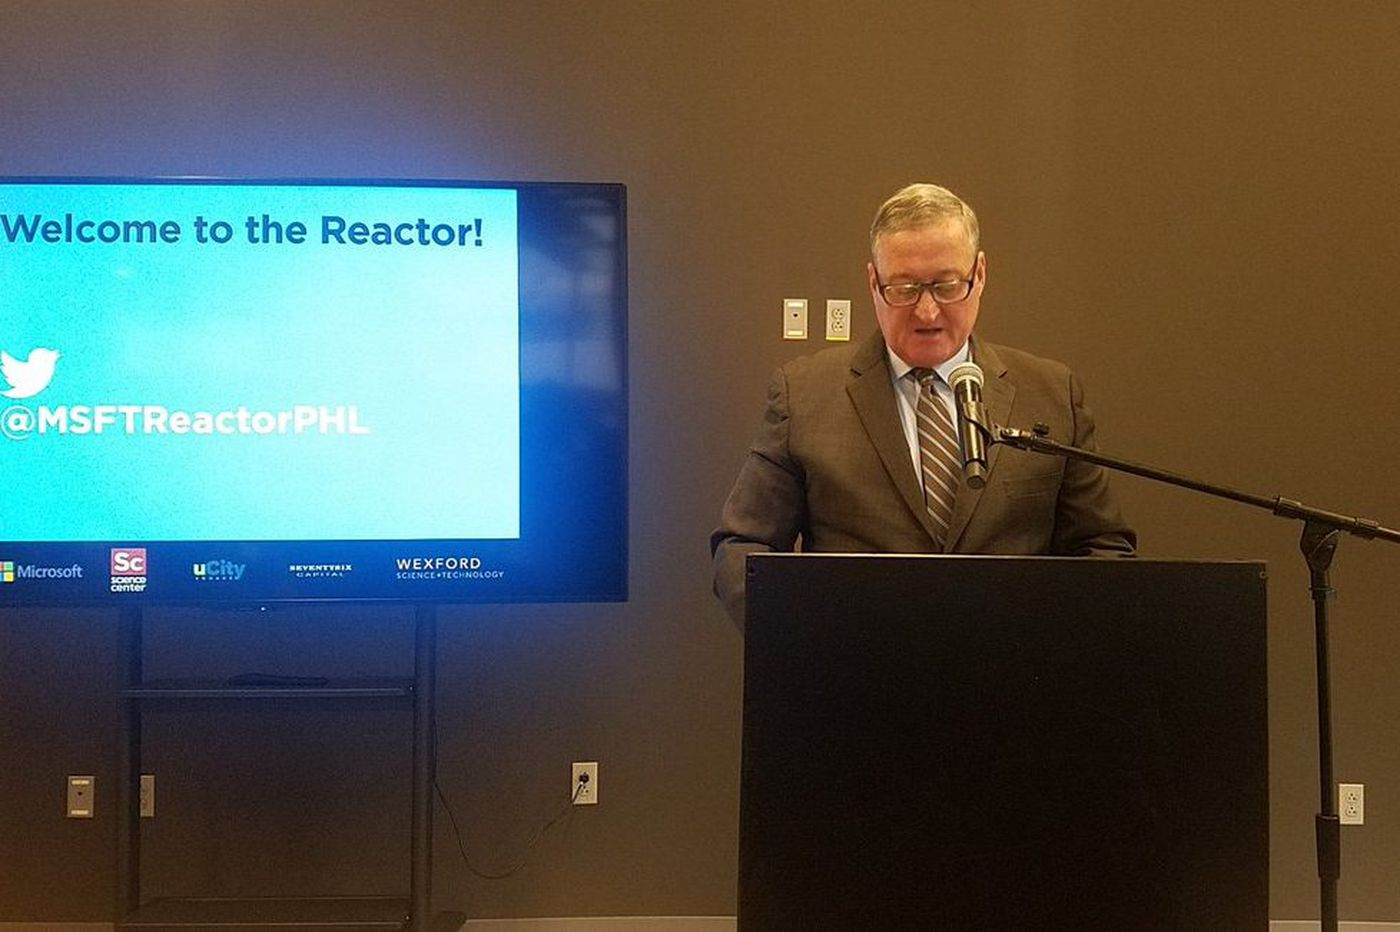 Microsoft closes Philly 'Reactor' for innovators after just 15 months